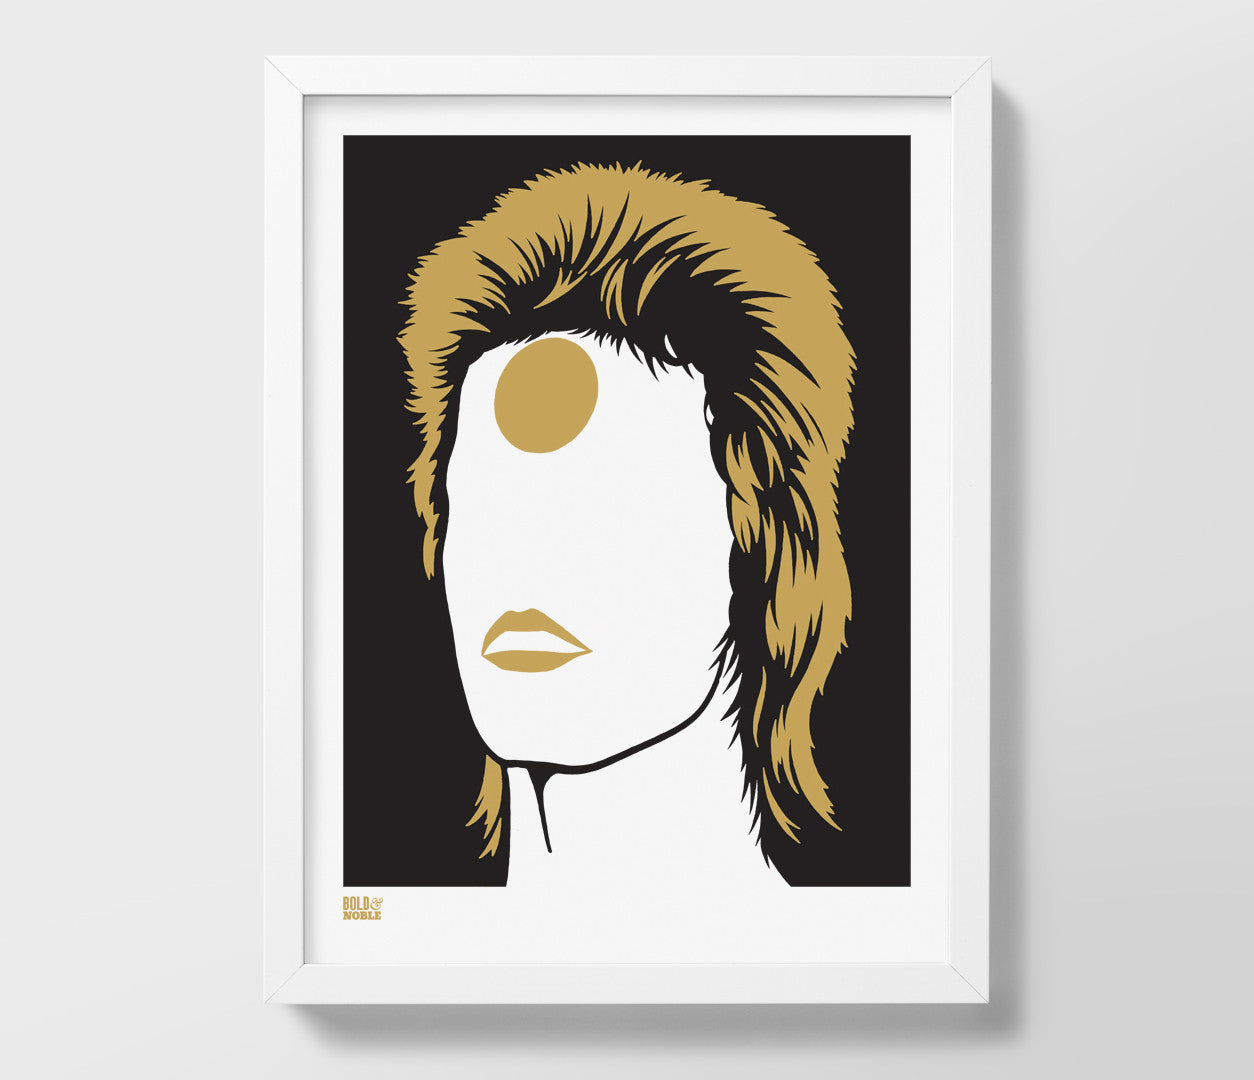 Wall Art where to start: Ziggy Stardust David Bowie screen print